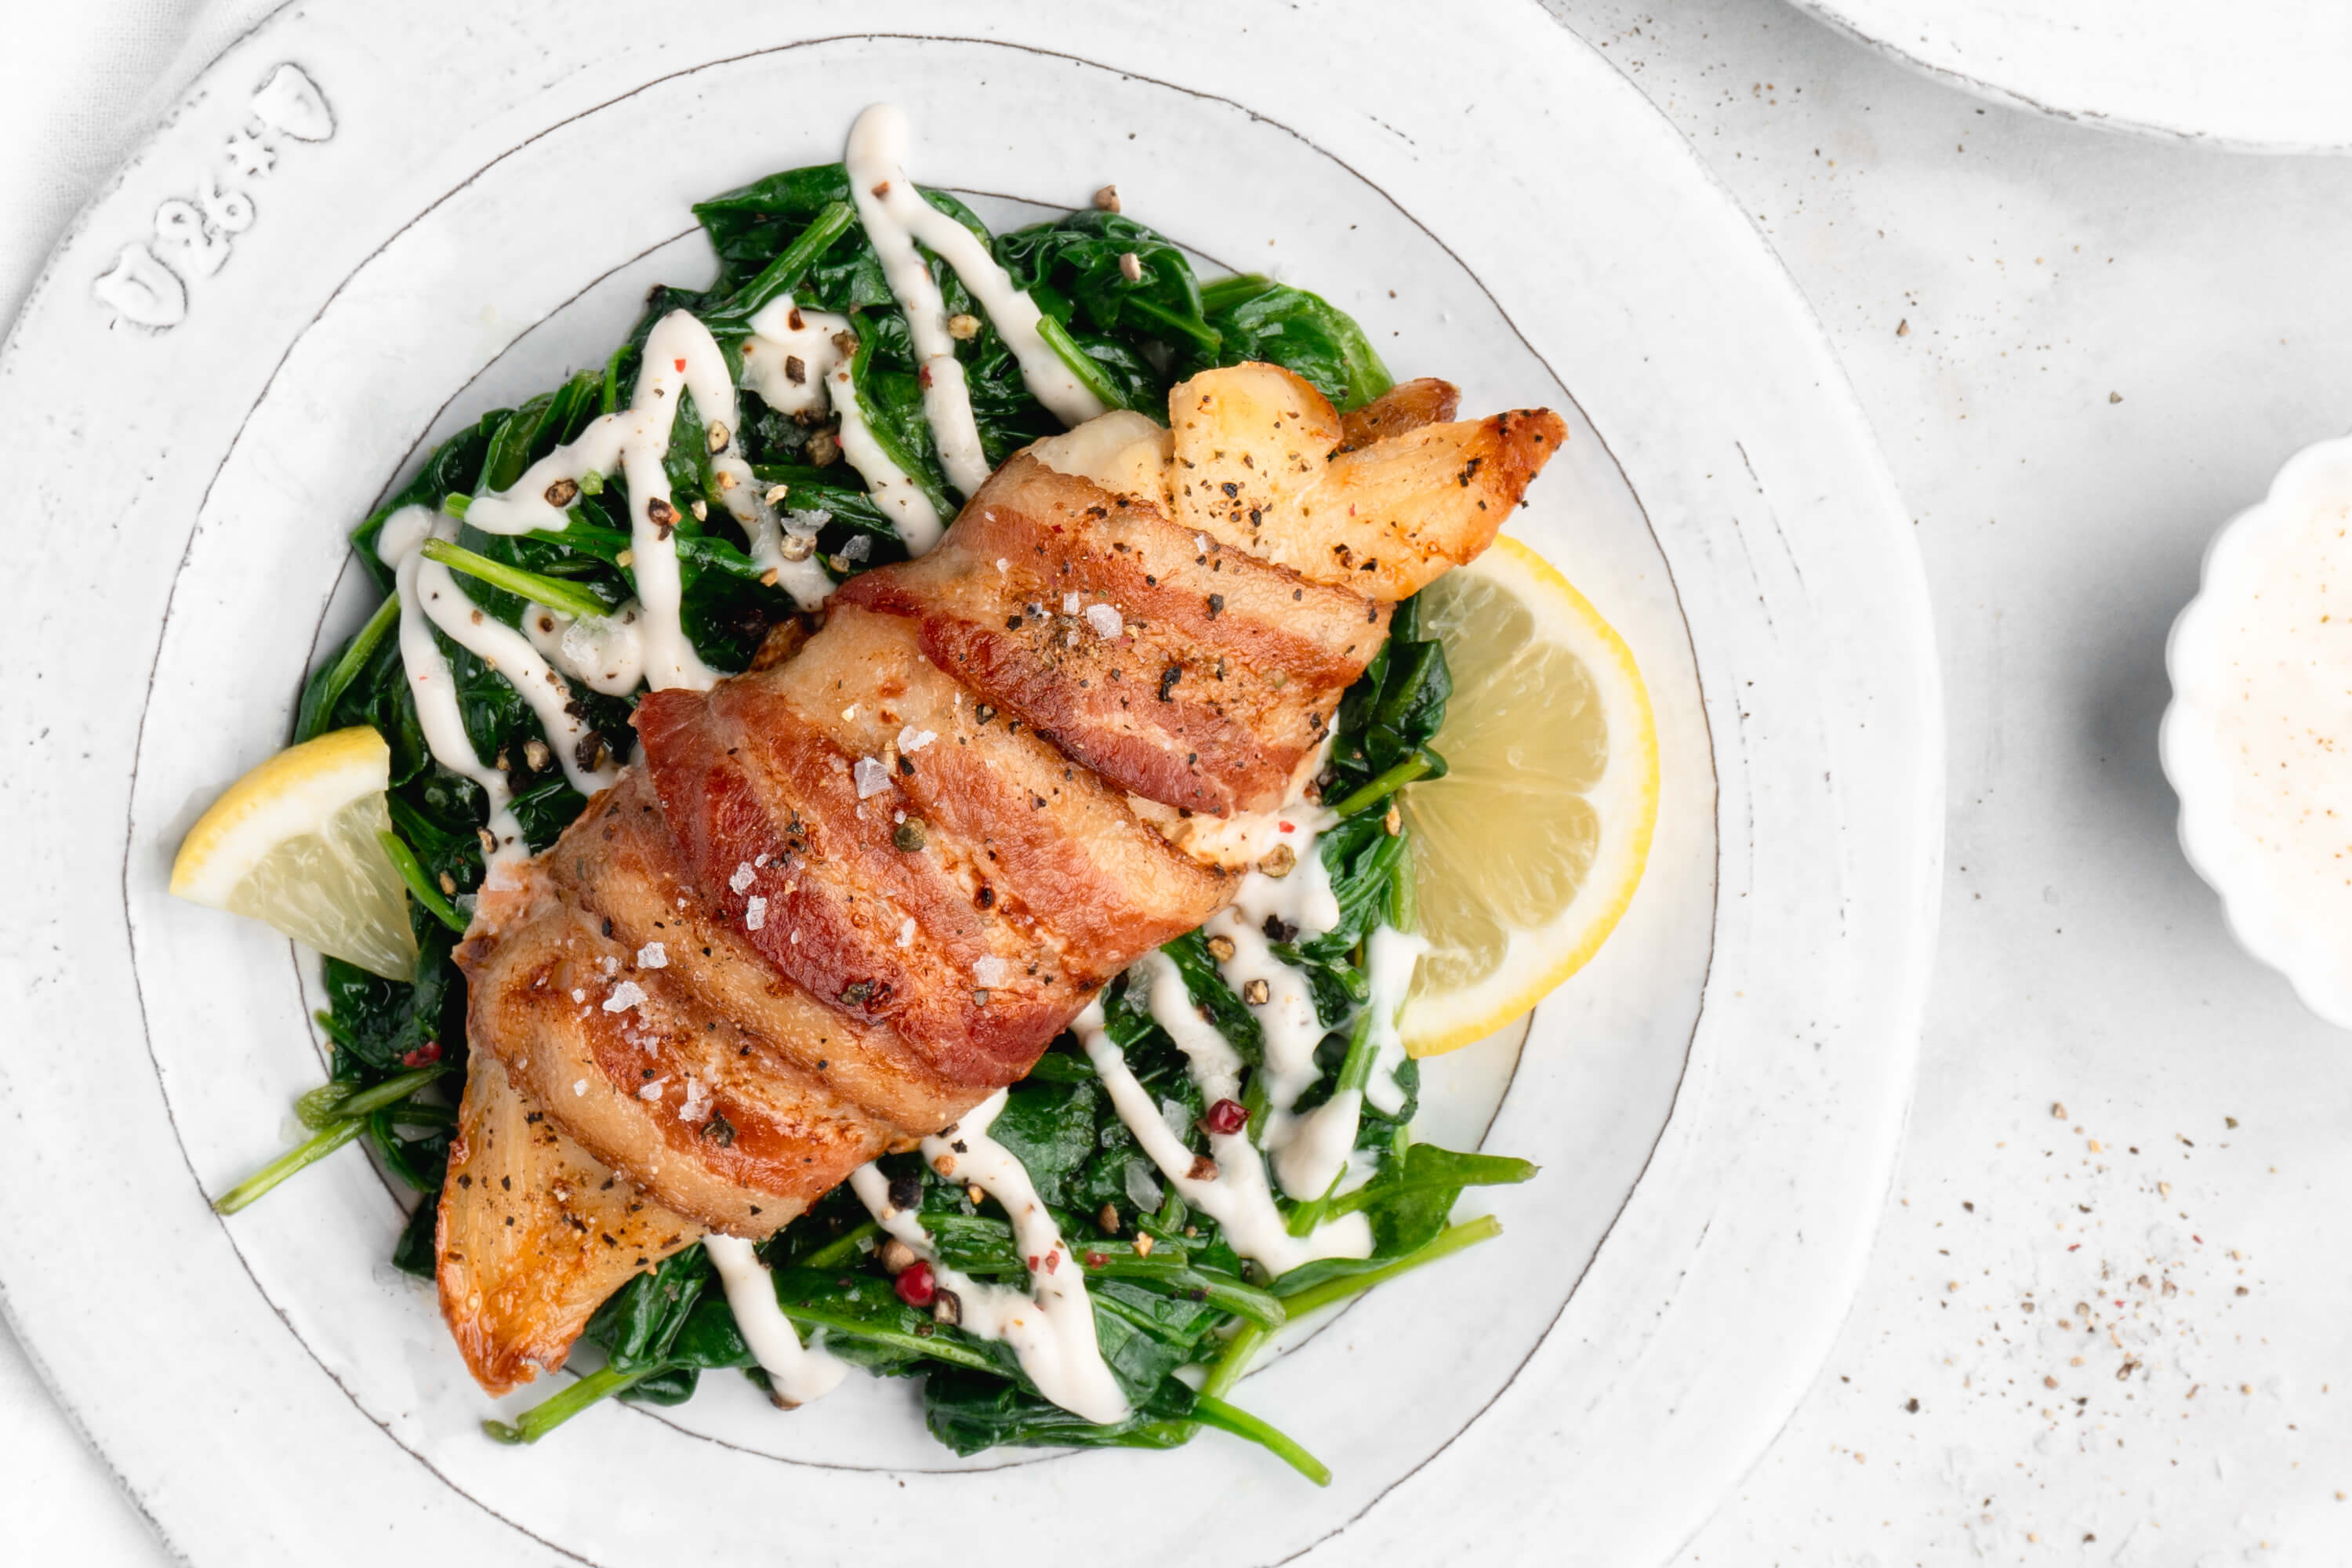 Bacon-Wrapped Tilapia with Spinach & Lemon Aioli00271 (1)